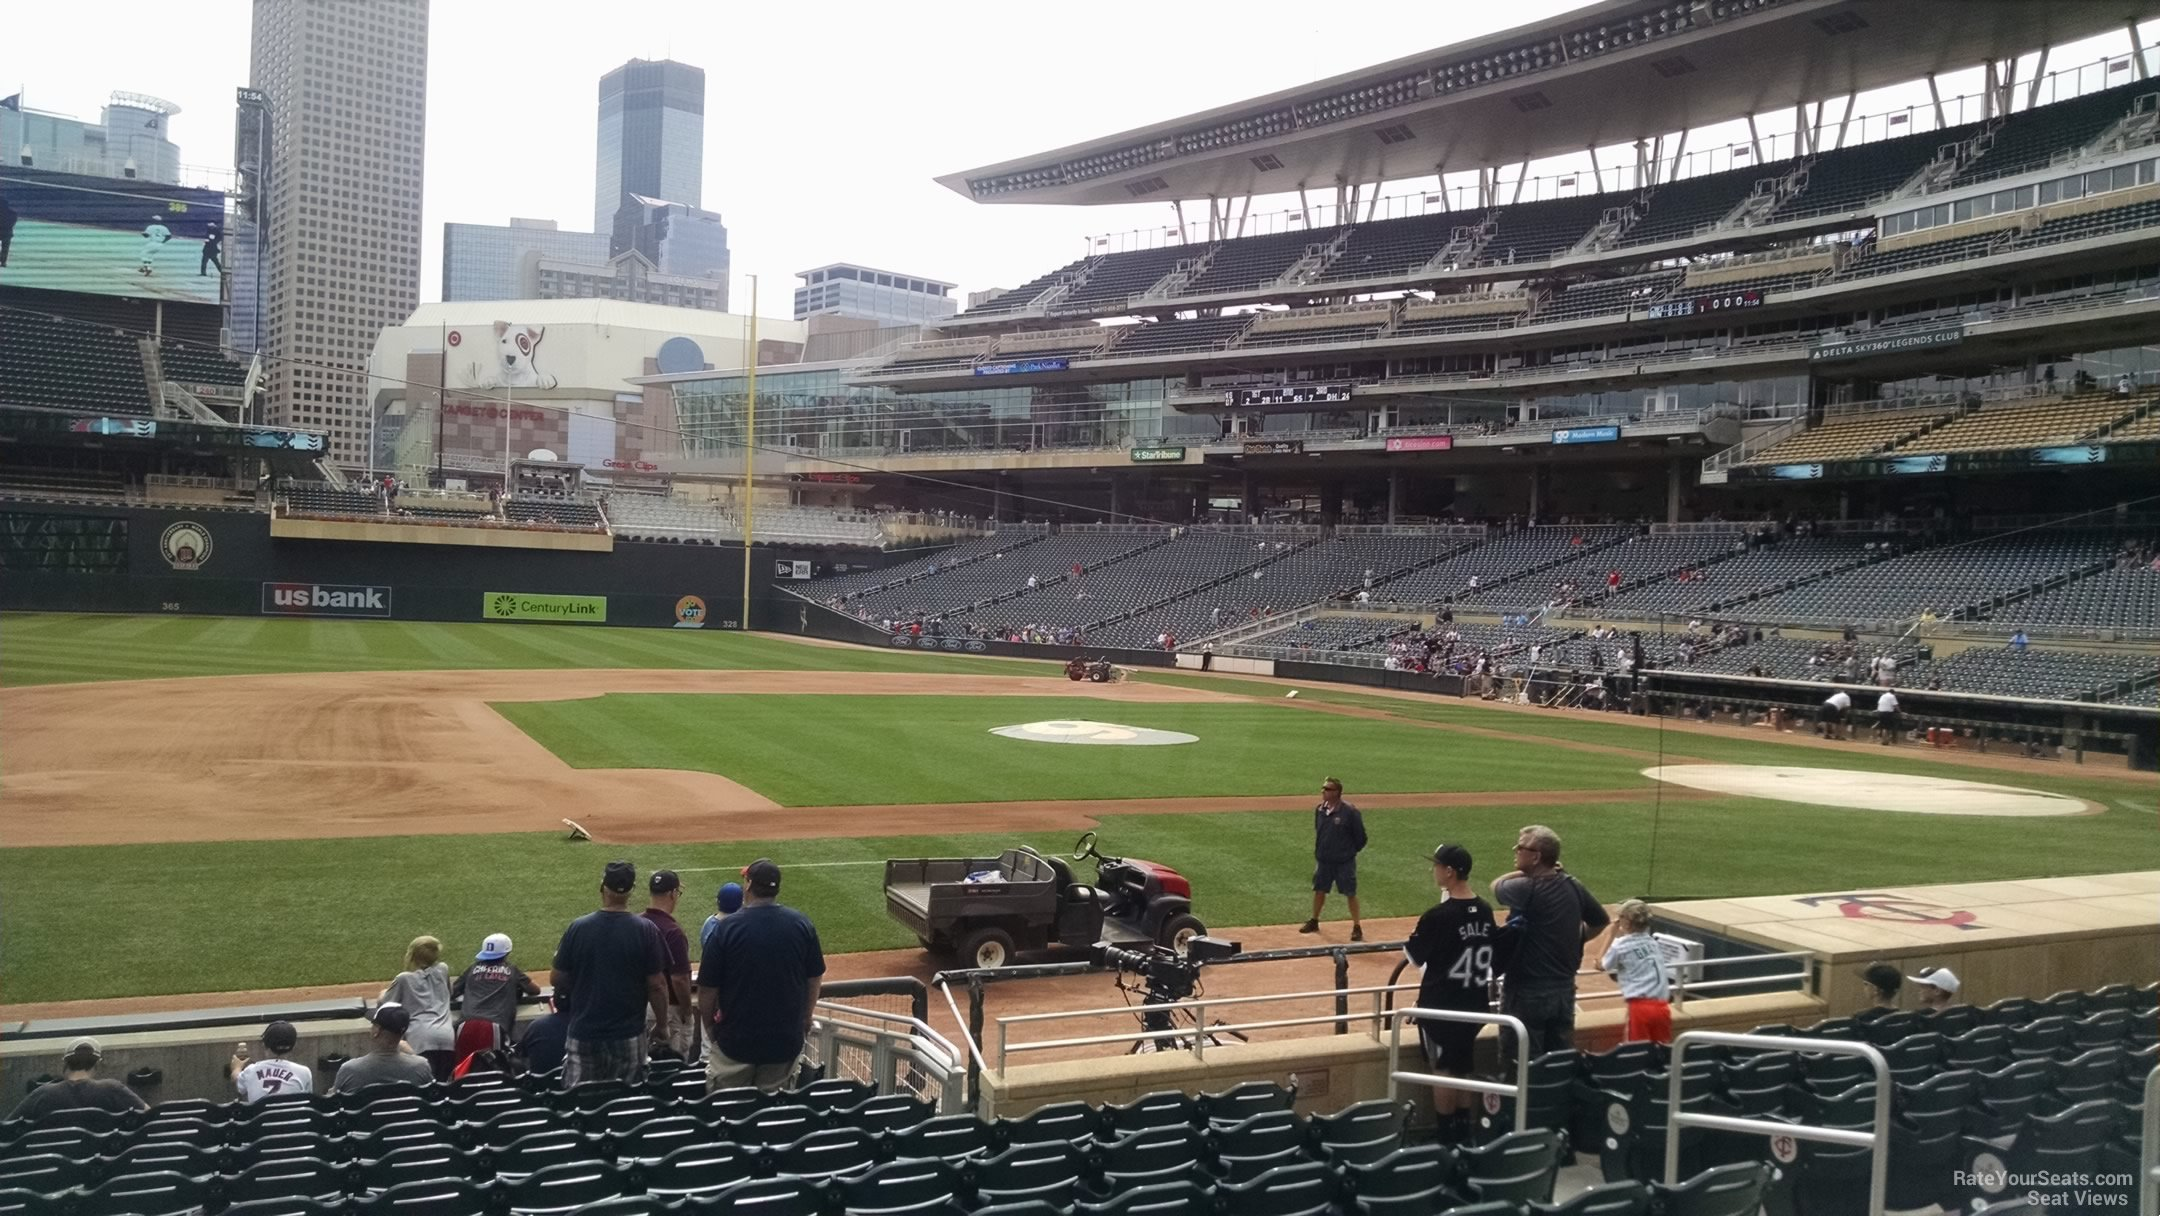 Target Field Section 14 - RateYourSeats.com